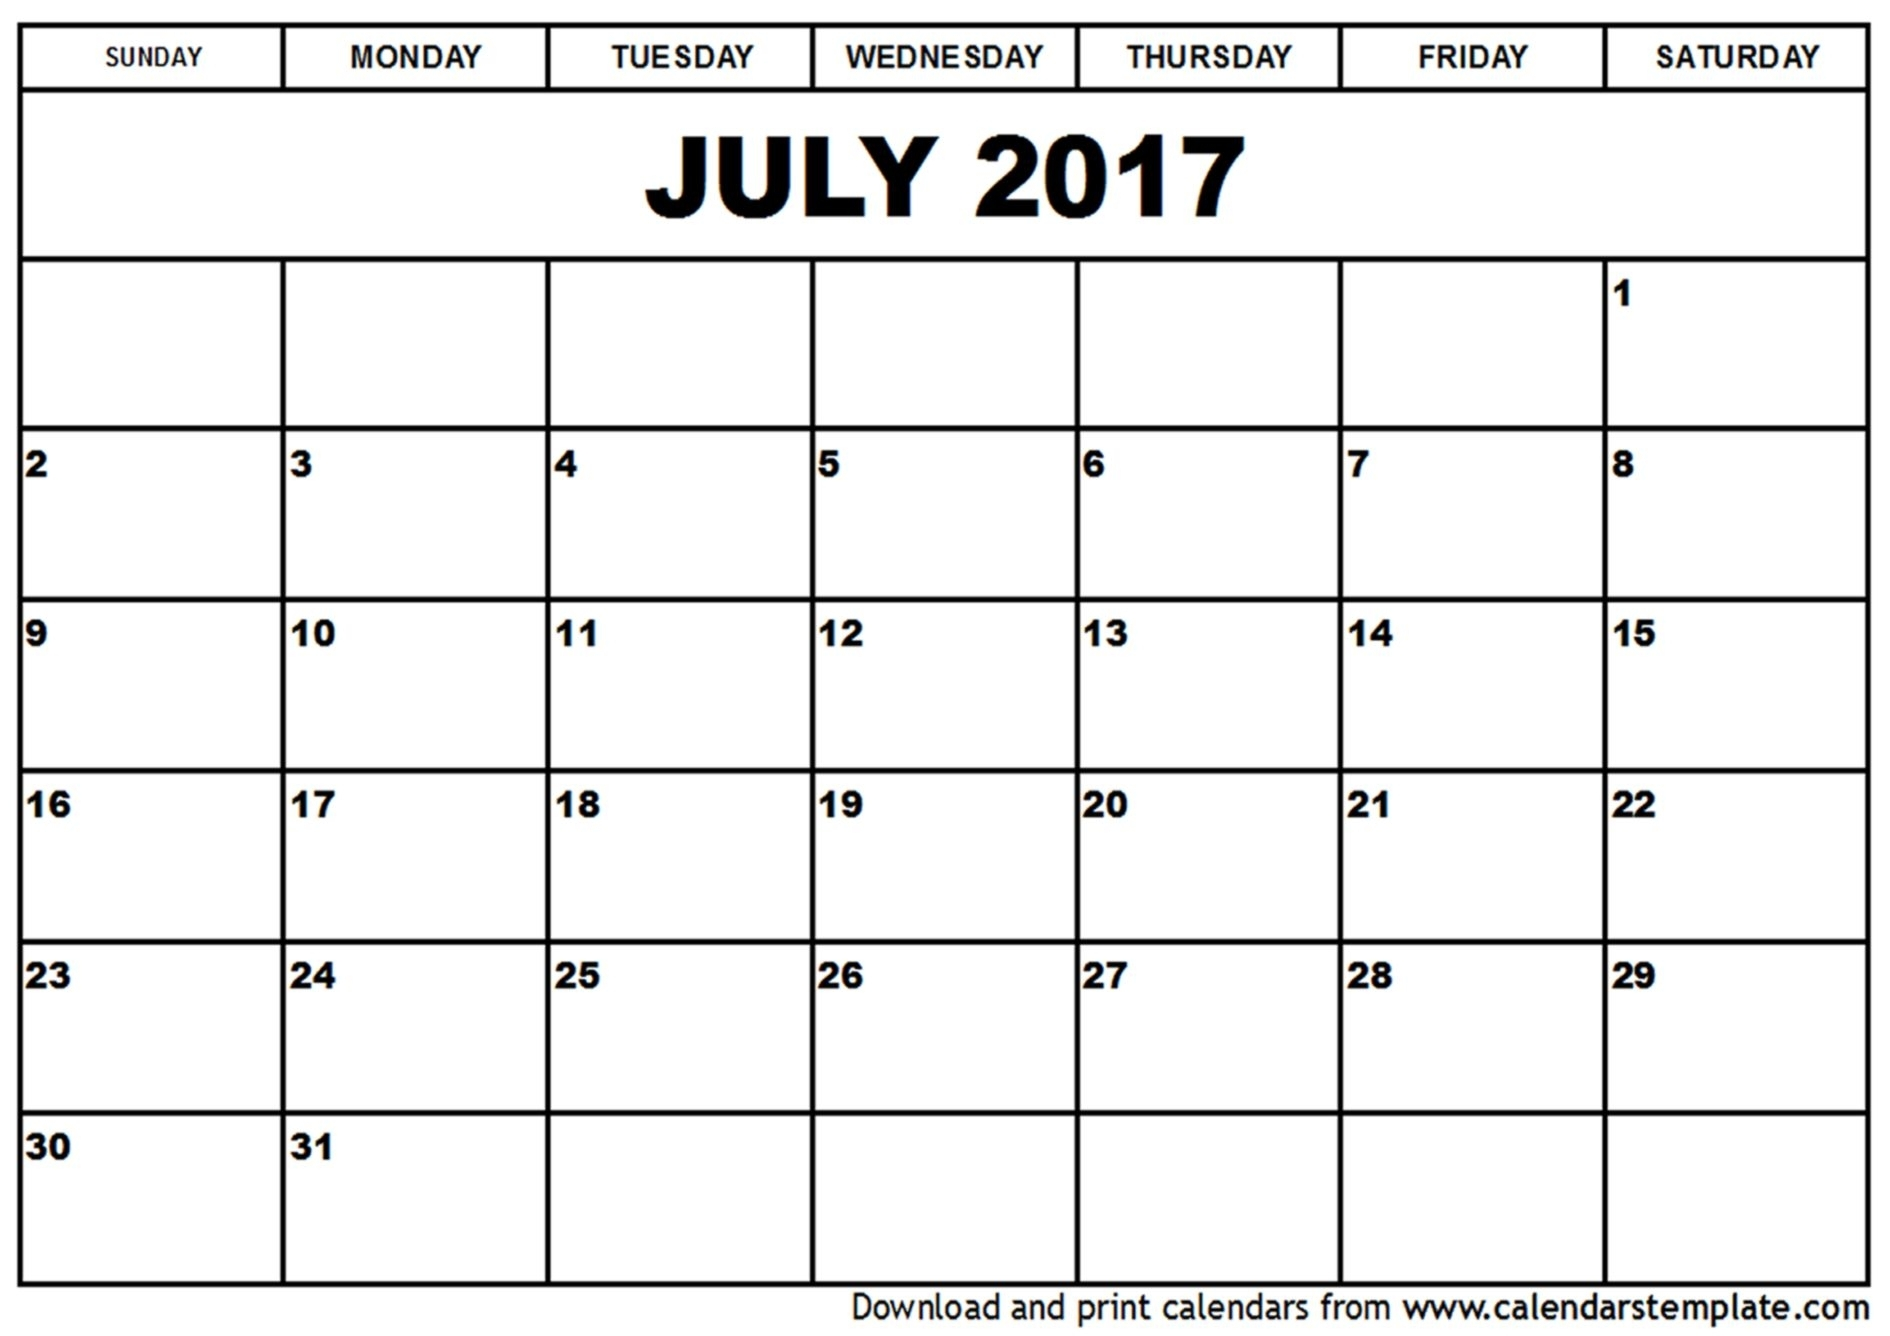 July 2017 Calendar Printable Template Pdf Holidays (With